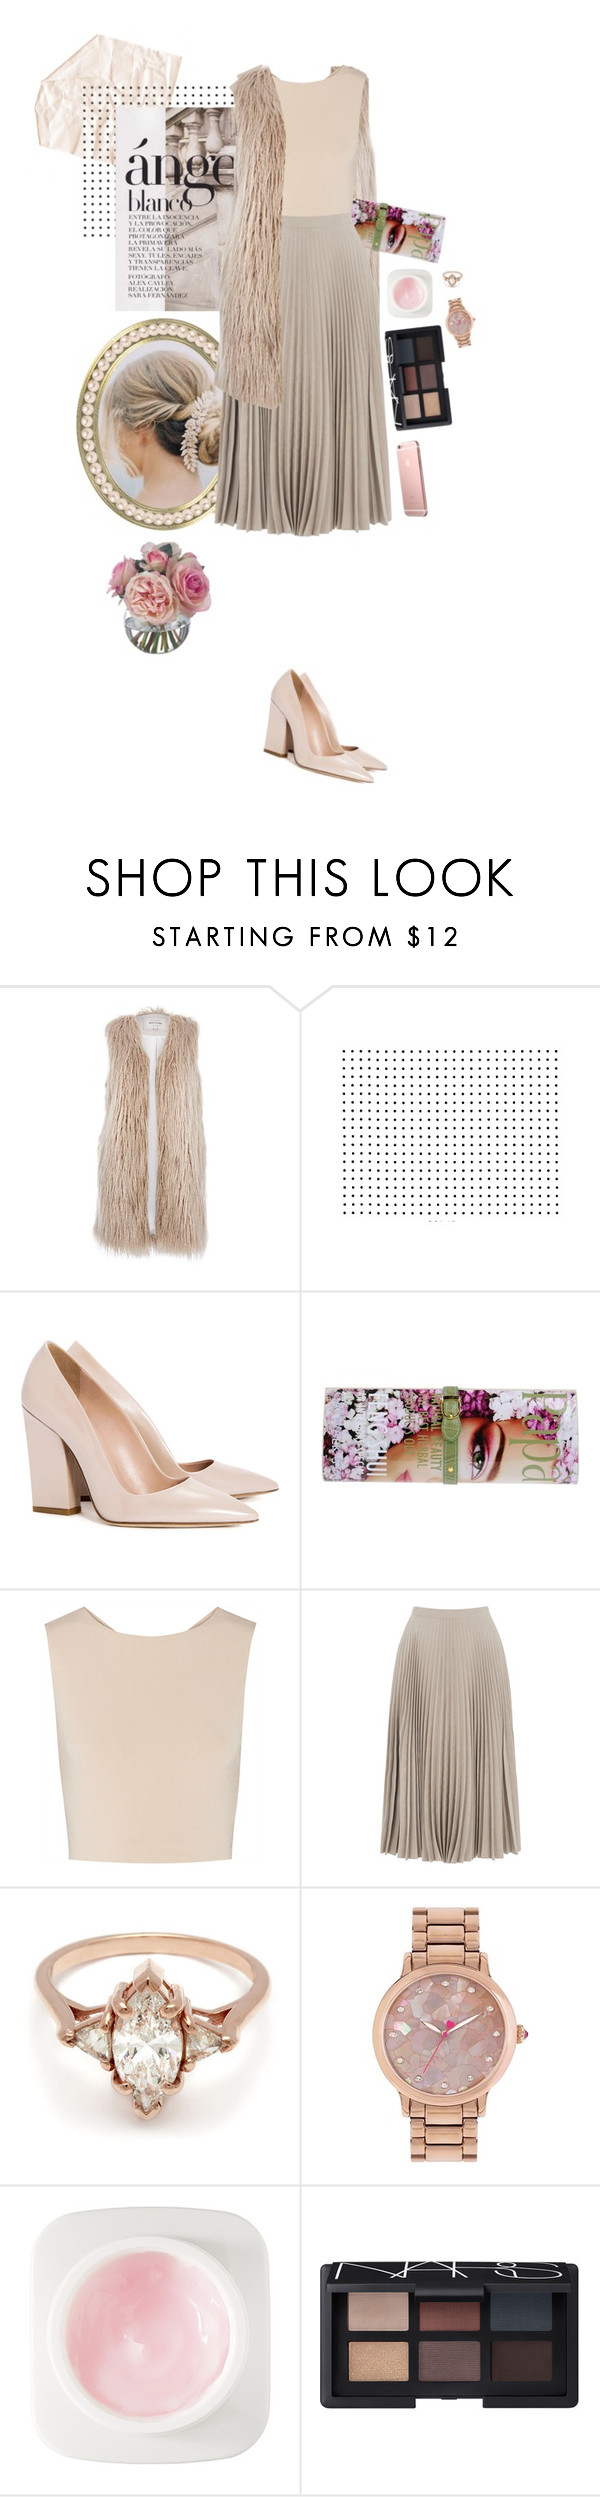 """""""Moodboard #1"""" by streetstylefiles ❤ liked on Polyvore featuring River Island, Dee Keller, Papà Razzi, Alice + Olivia, Warehouse, BEA, Betsey Johnson, Erno Laszlo, NARS Cosmetics and Diane James"""